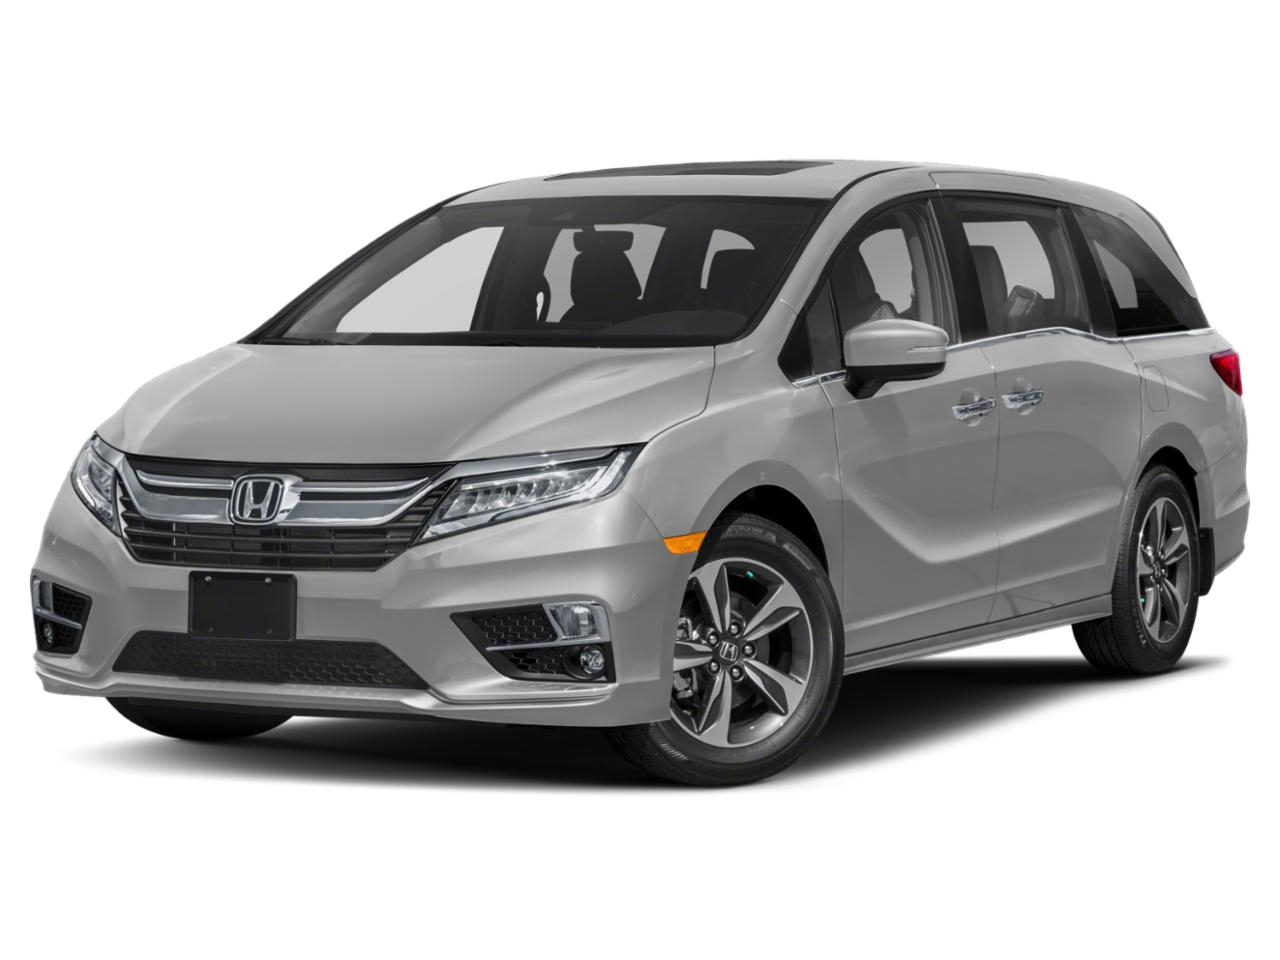 2019 Honda Odyssey Vehicle Photo in Avon, CT 06001